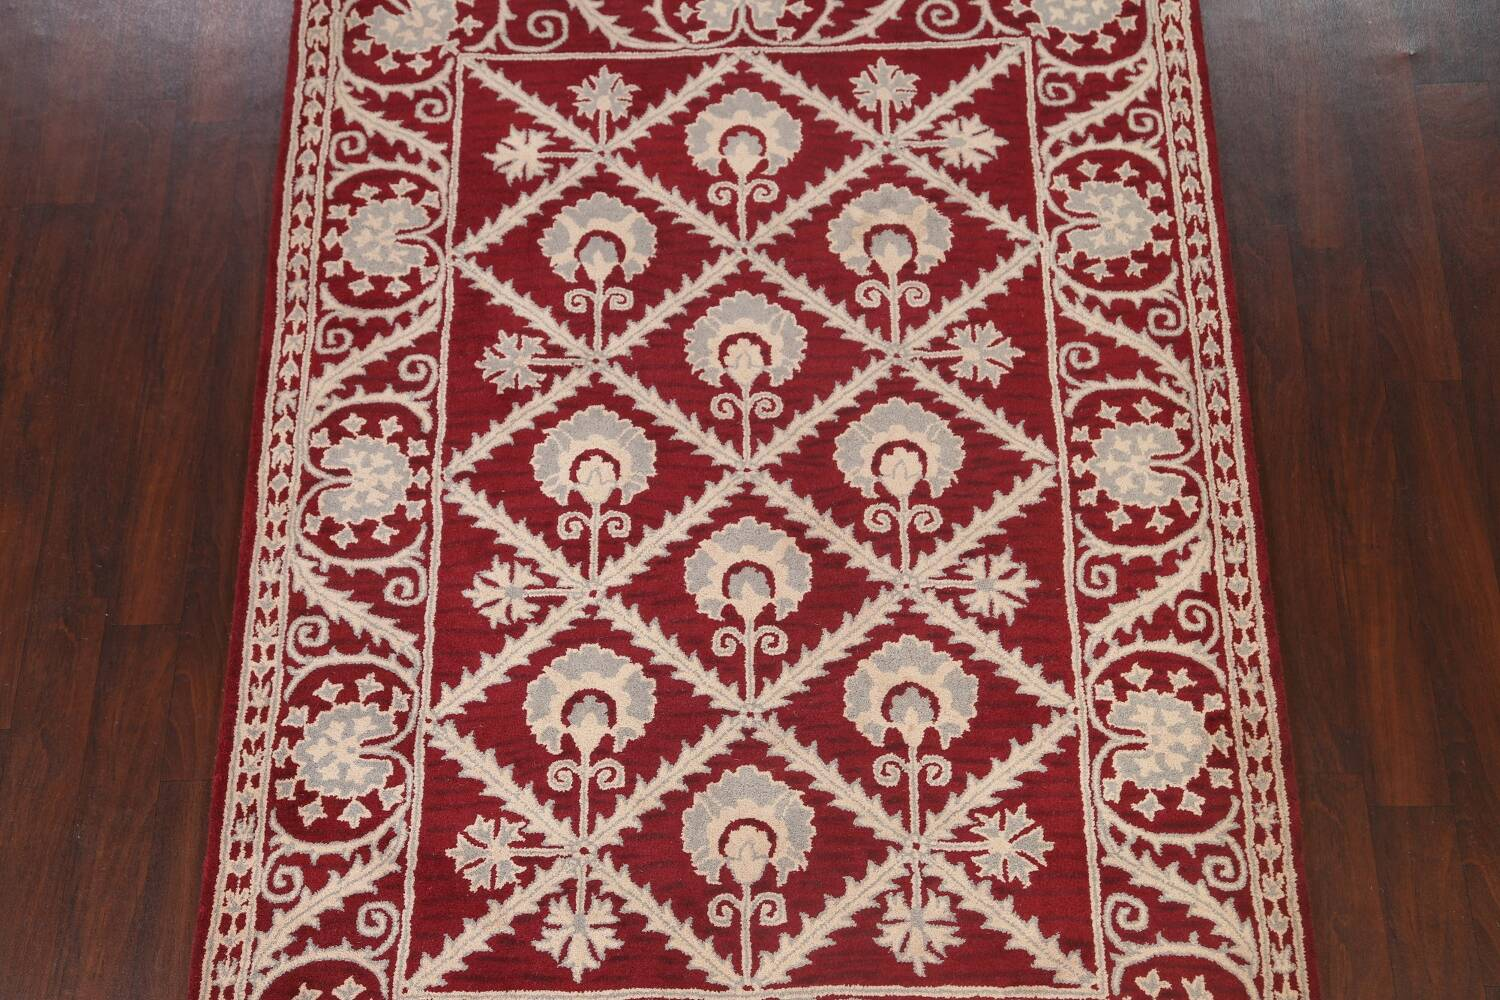 Hand-Tufted Floral Area Rug 6x8 image 3